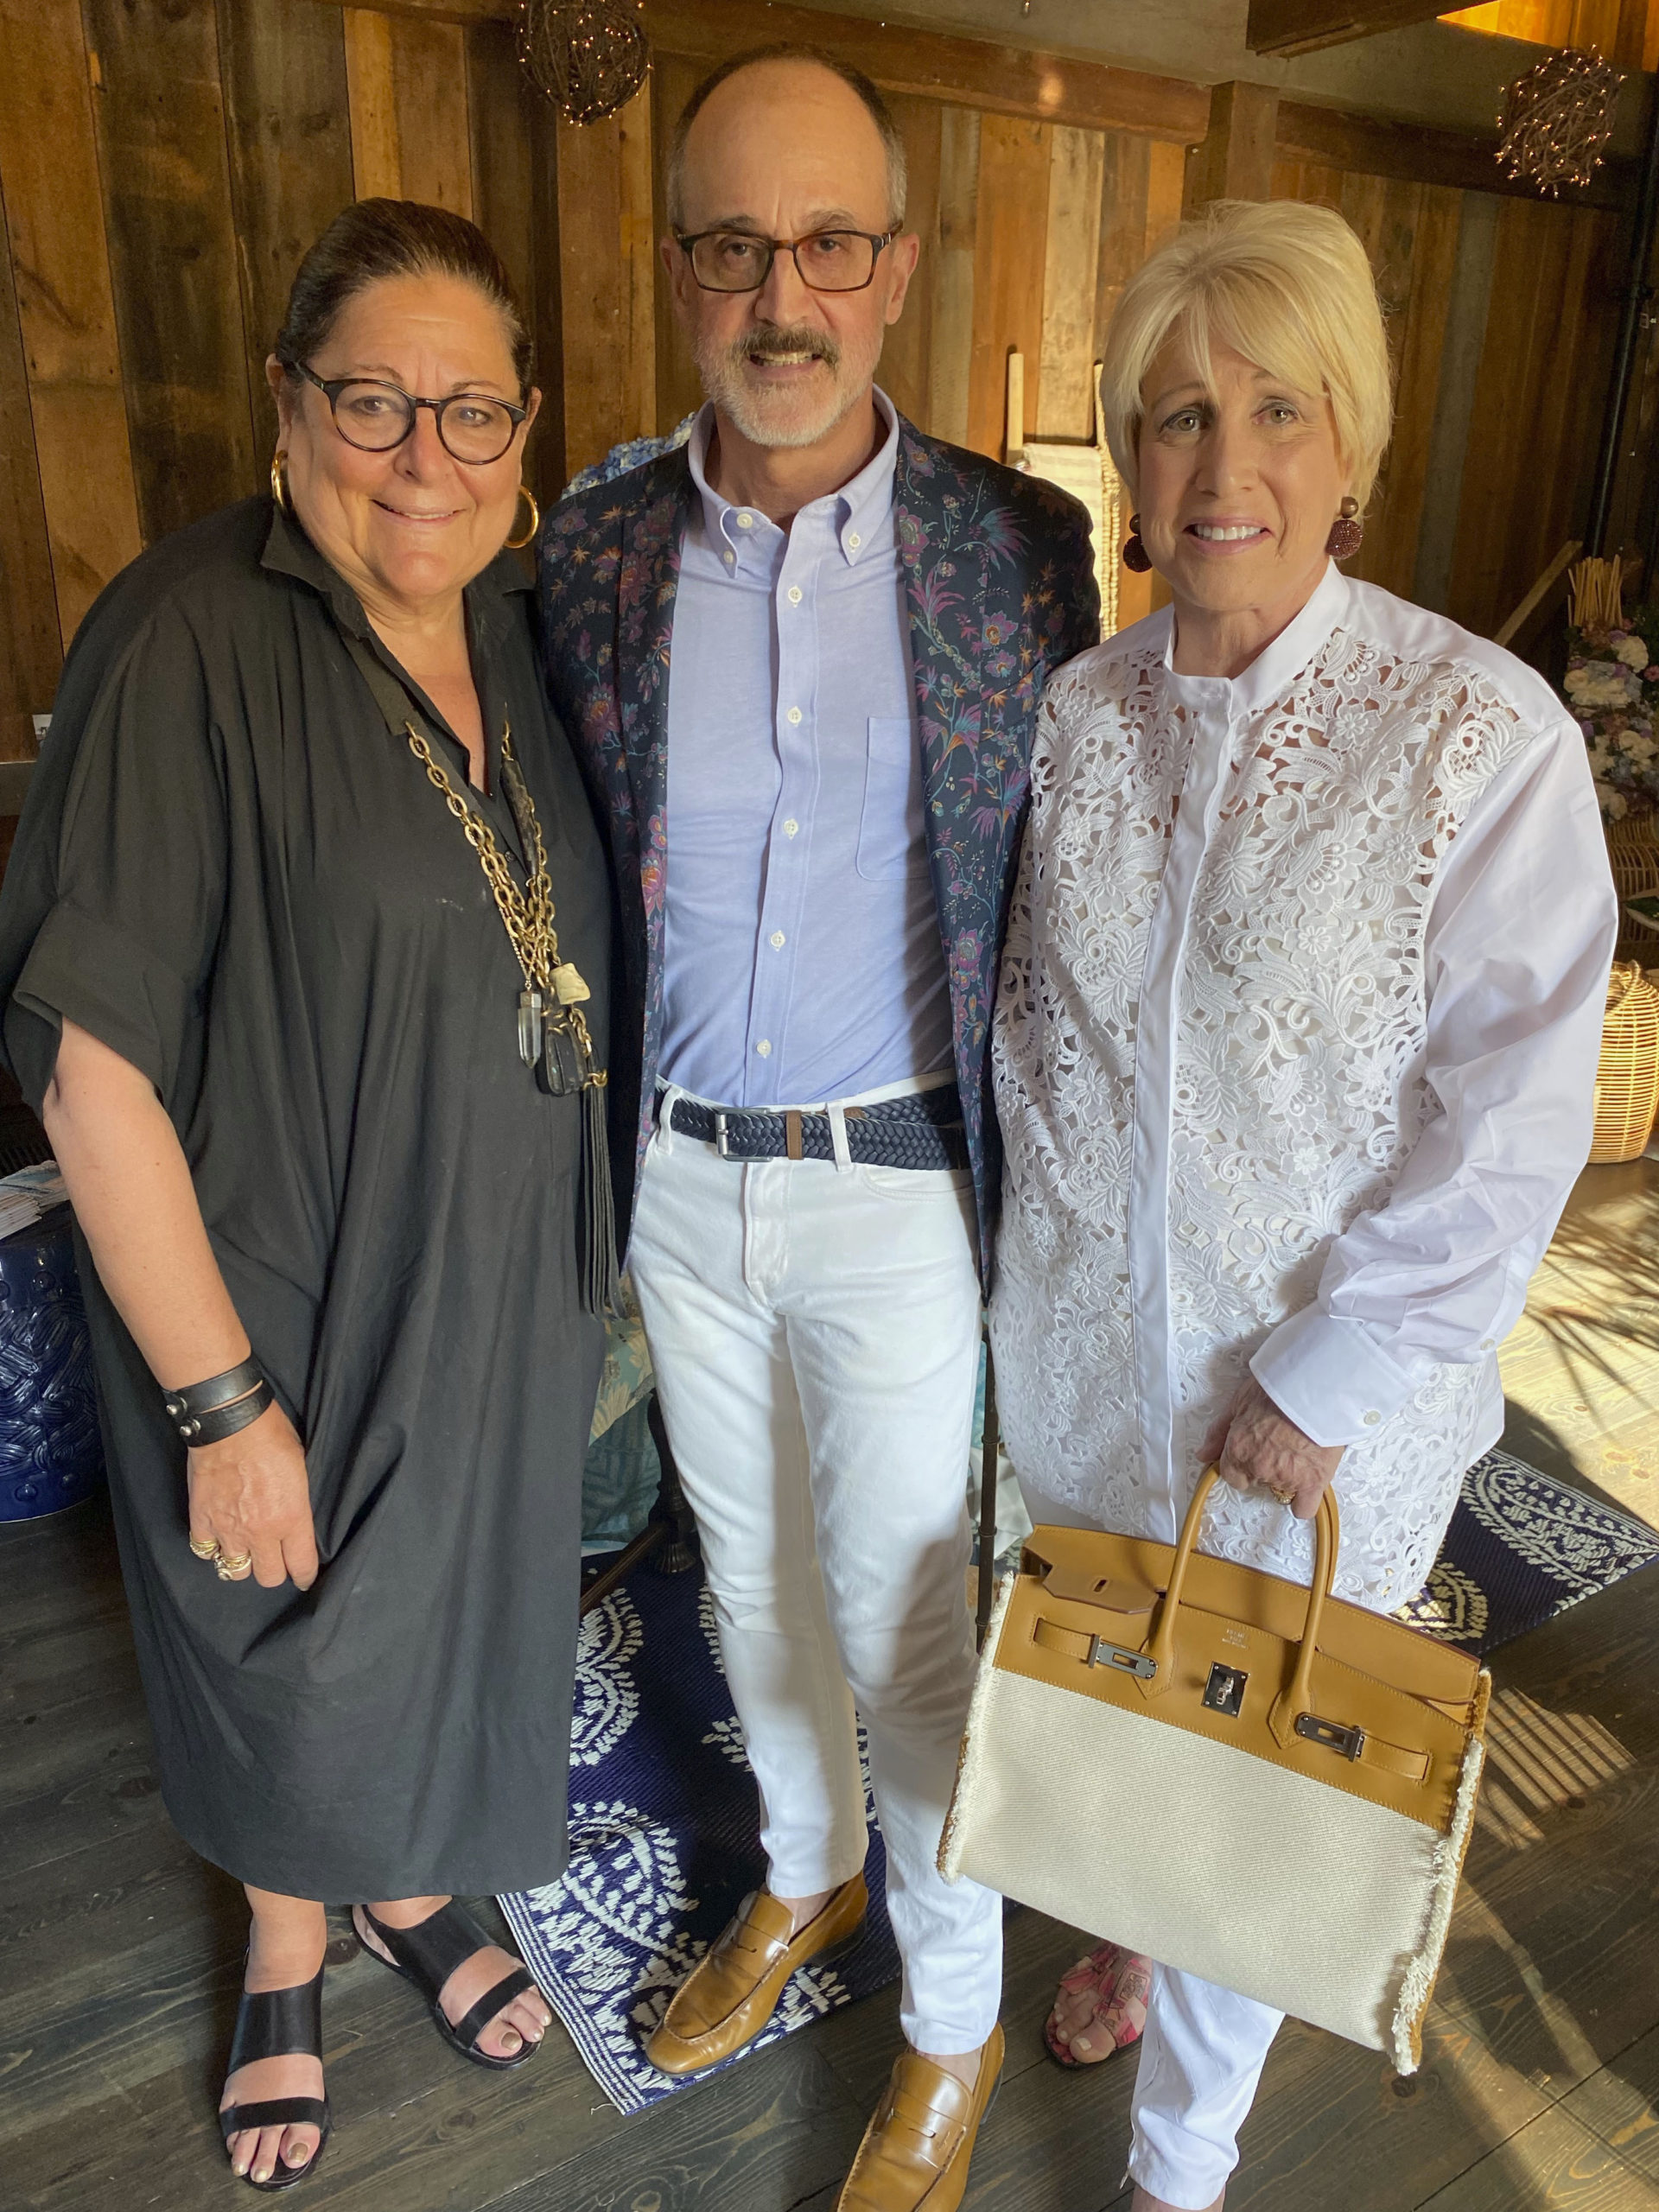 Fern Mallis, Arthur Dunnam and Susan P. Friedman at the Holiday House Tabletop event.  GREG DELIA